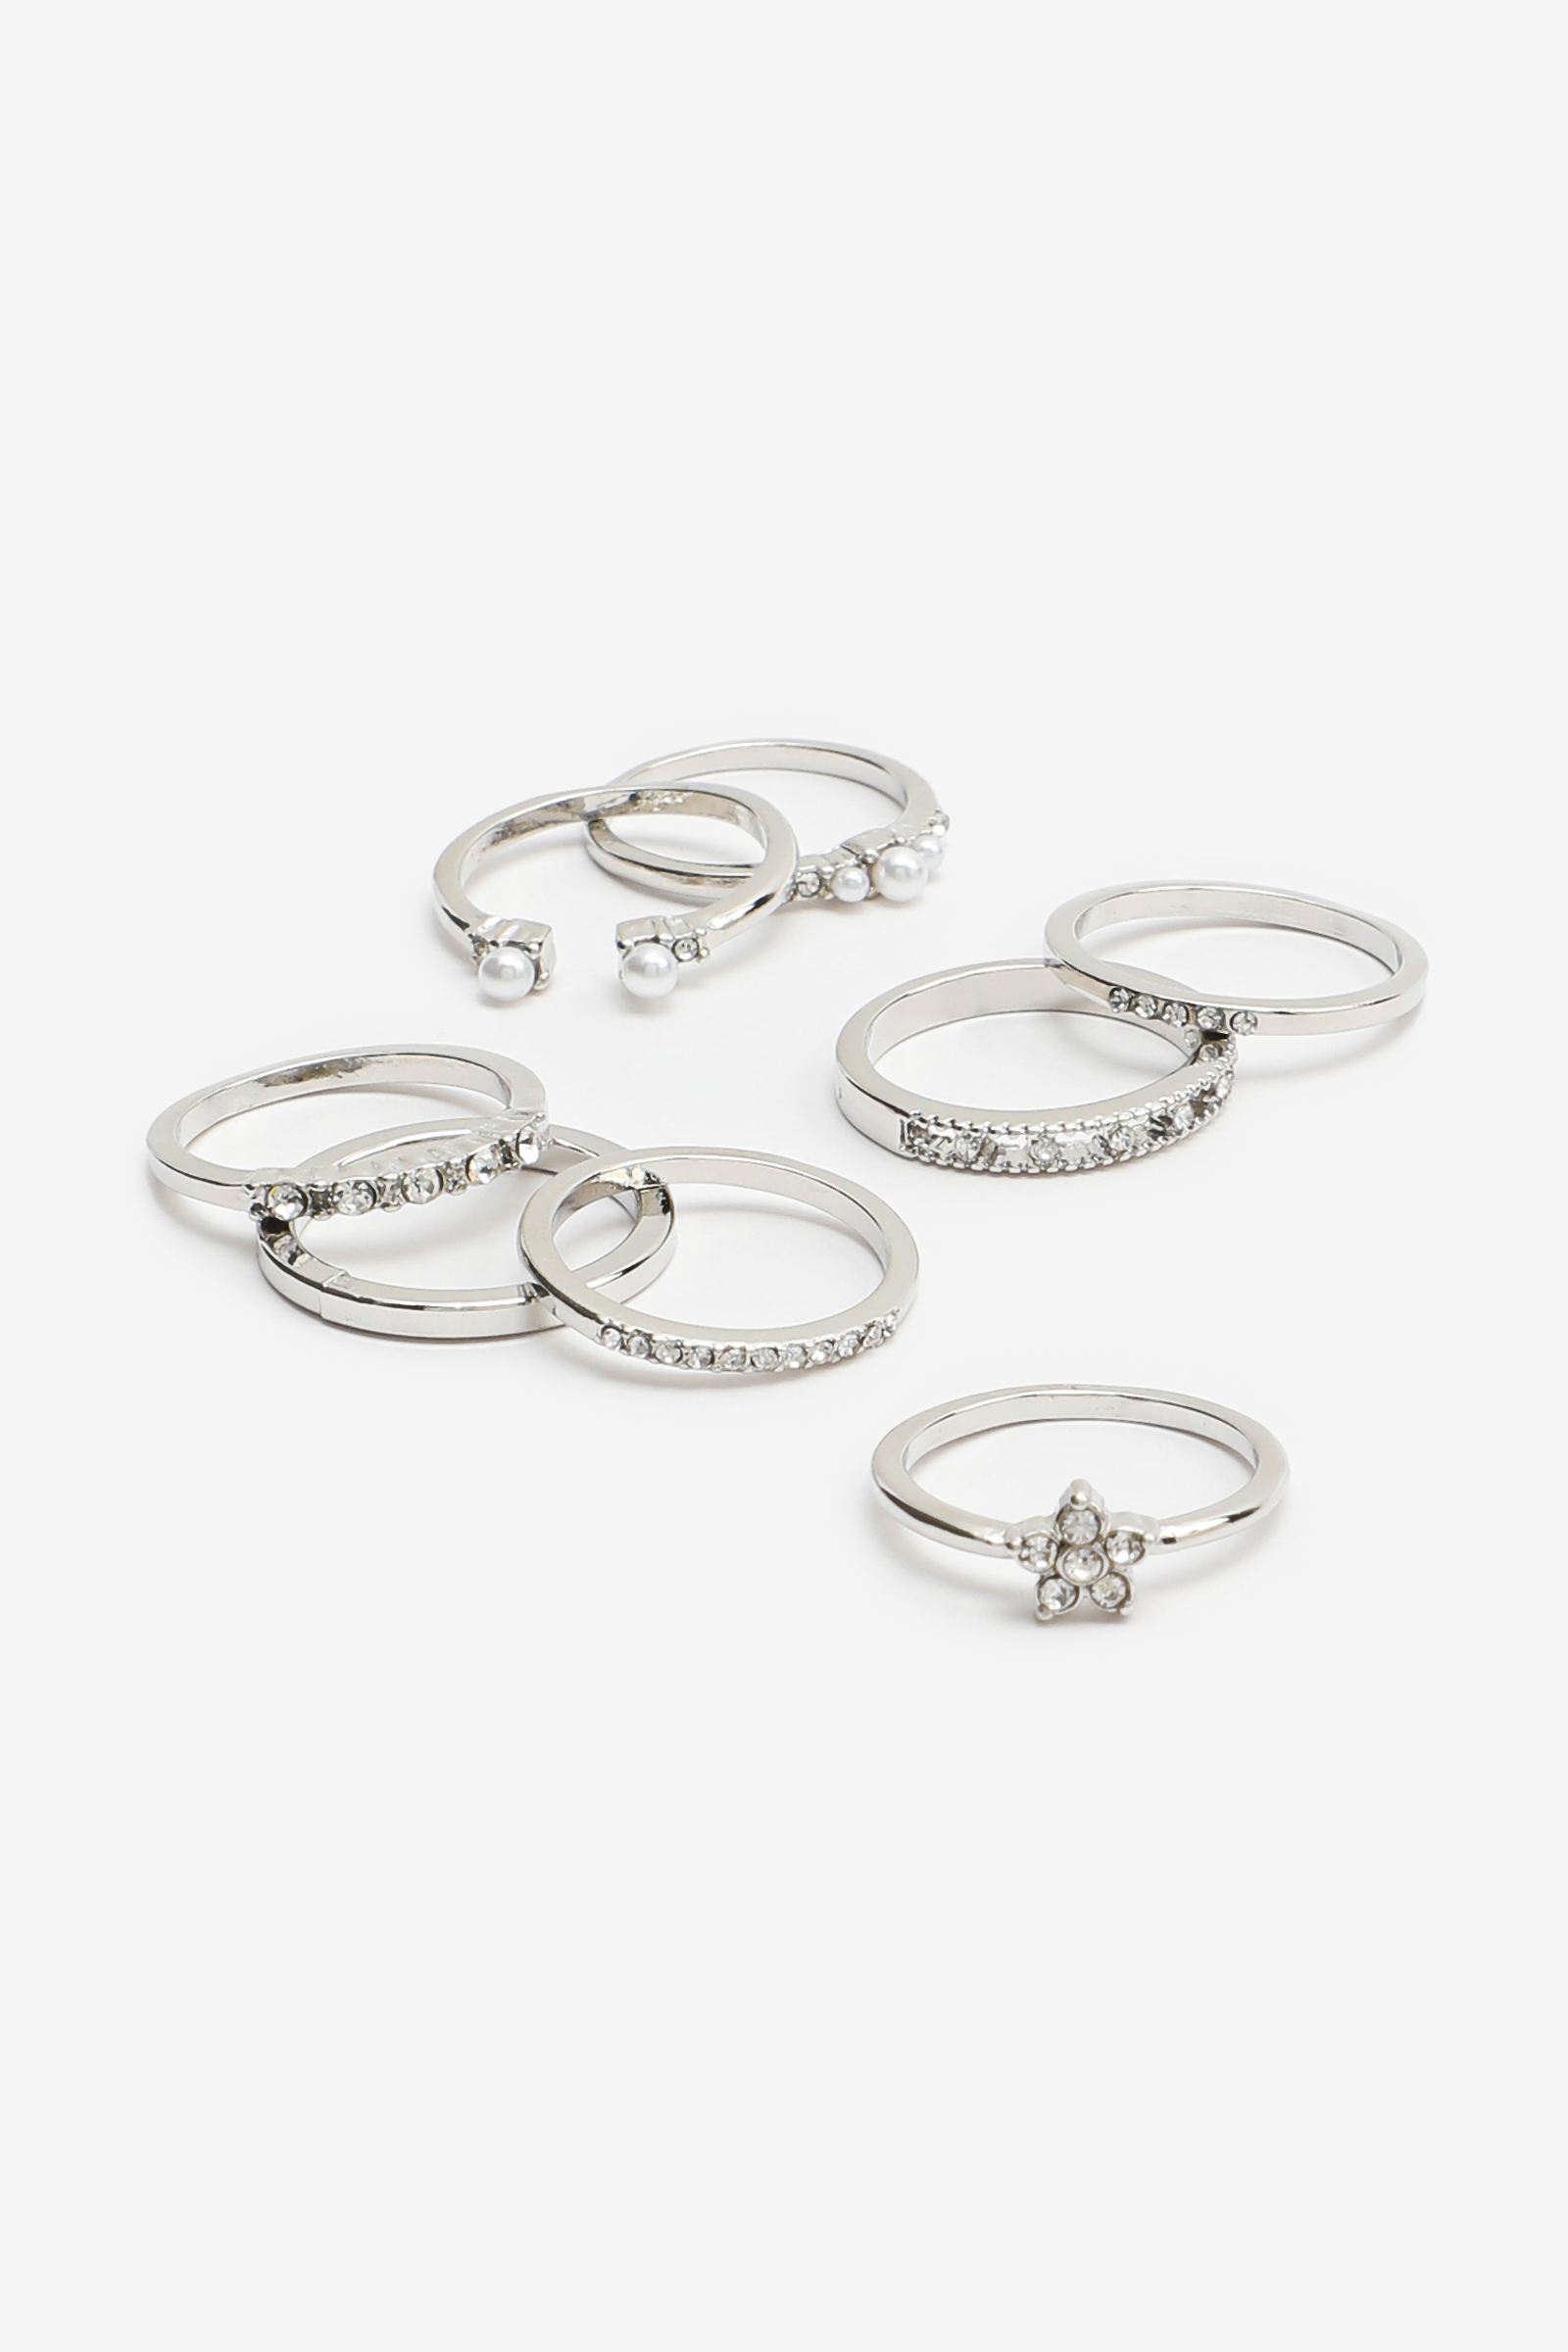 Pack of Pearl and Stone Rings